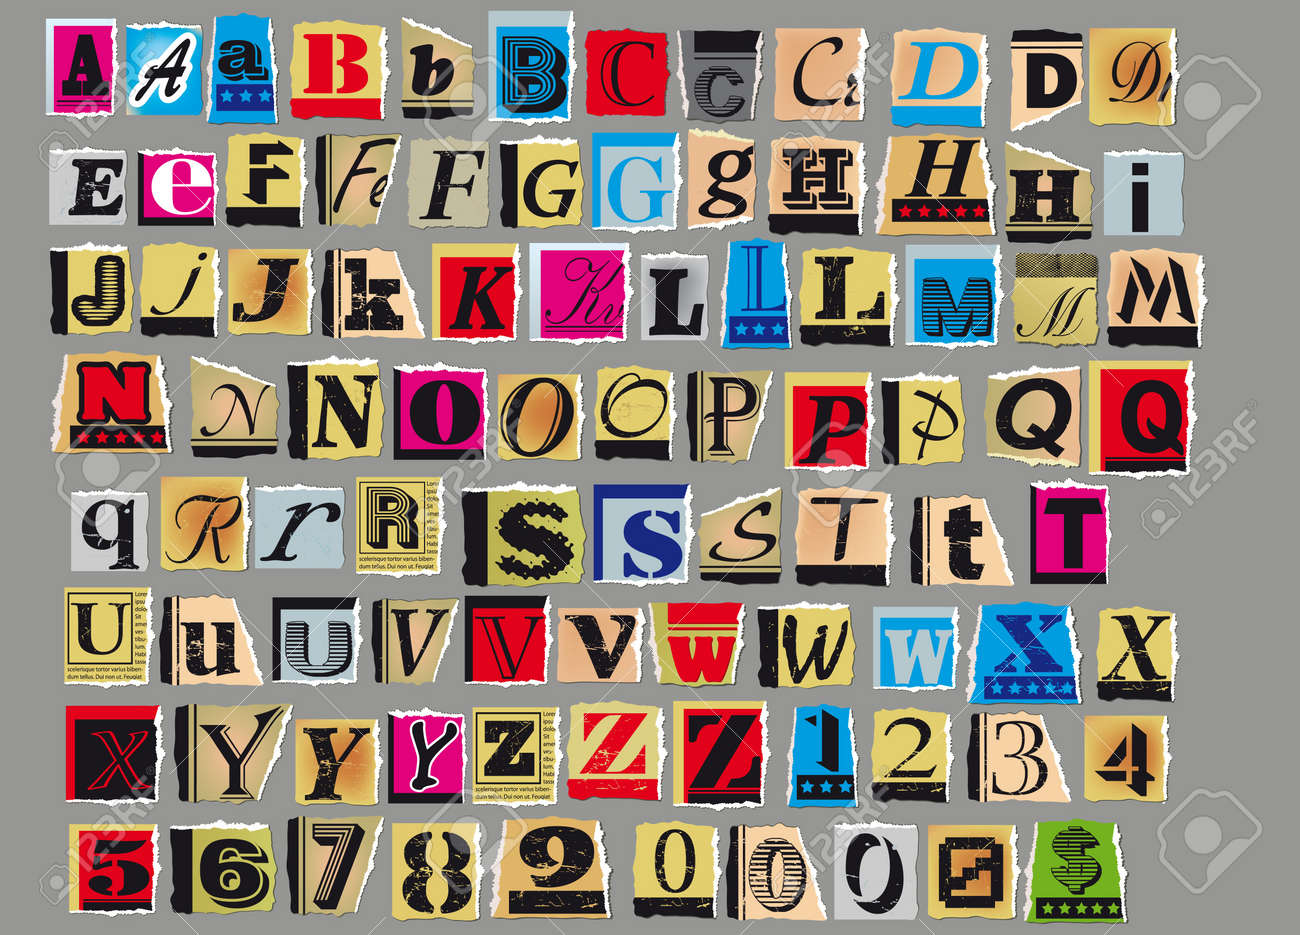 Letters and numbers cut out from old magazines and newspapers letters and numbers cut out from old magazines and newspapers isolated on gray background stock vector spiritdancerdesigns Choice Image